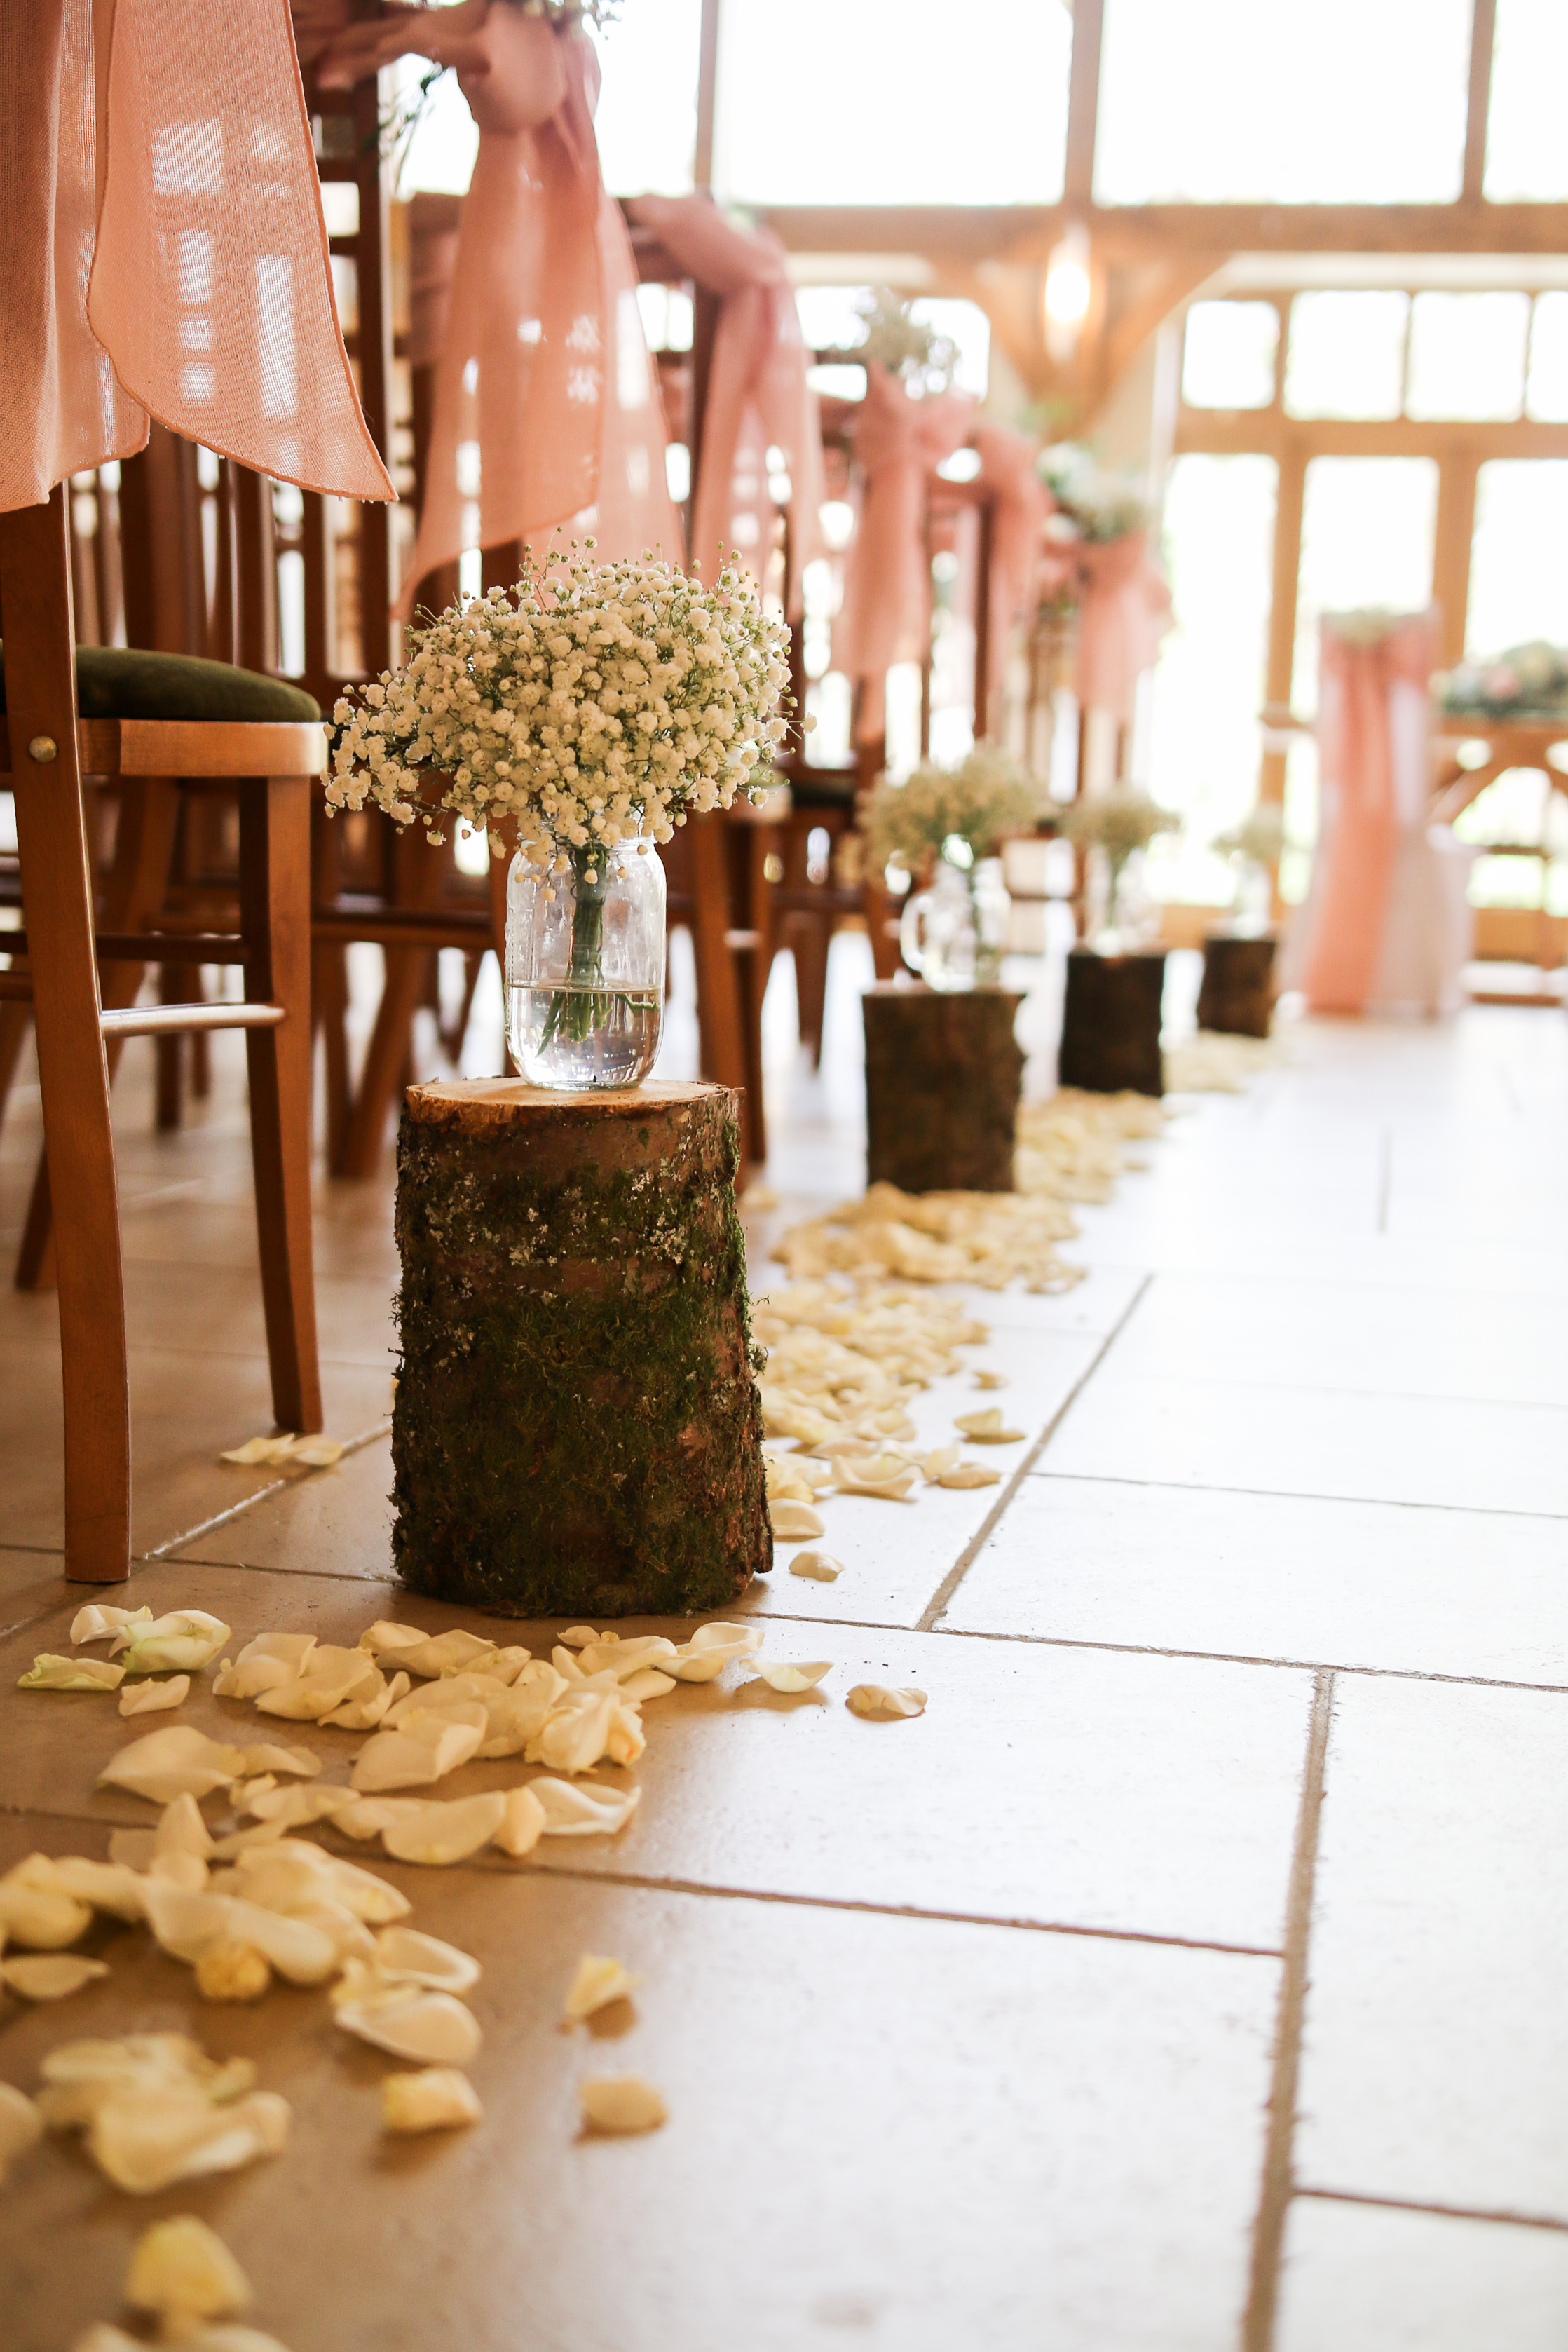 Log stumps With flowerVases - A beautiful way to add a rustic touch to your aisle, with flower vases included, created in keeping with your wedding coloursThese are approx £20.00 each or£15.00 each with gyp flowersor greenery. Petals not included in pricing